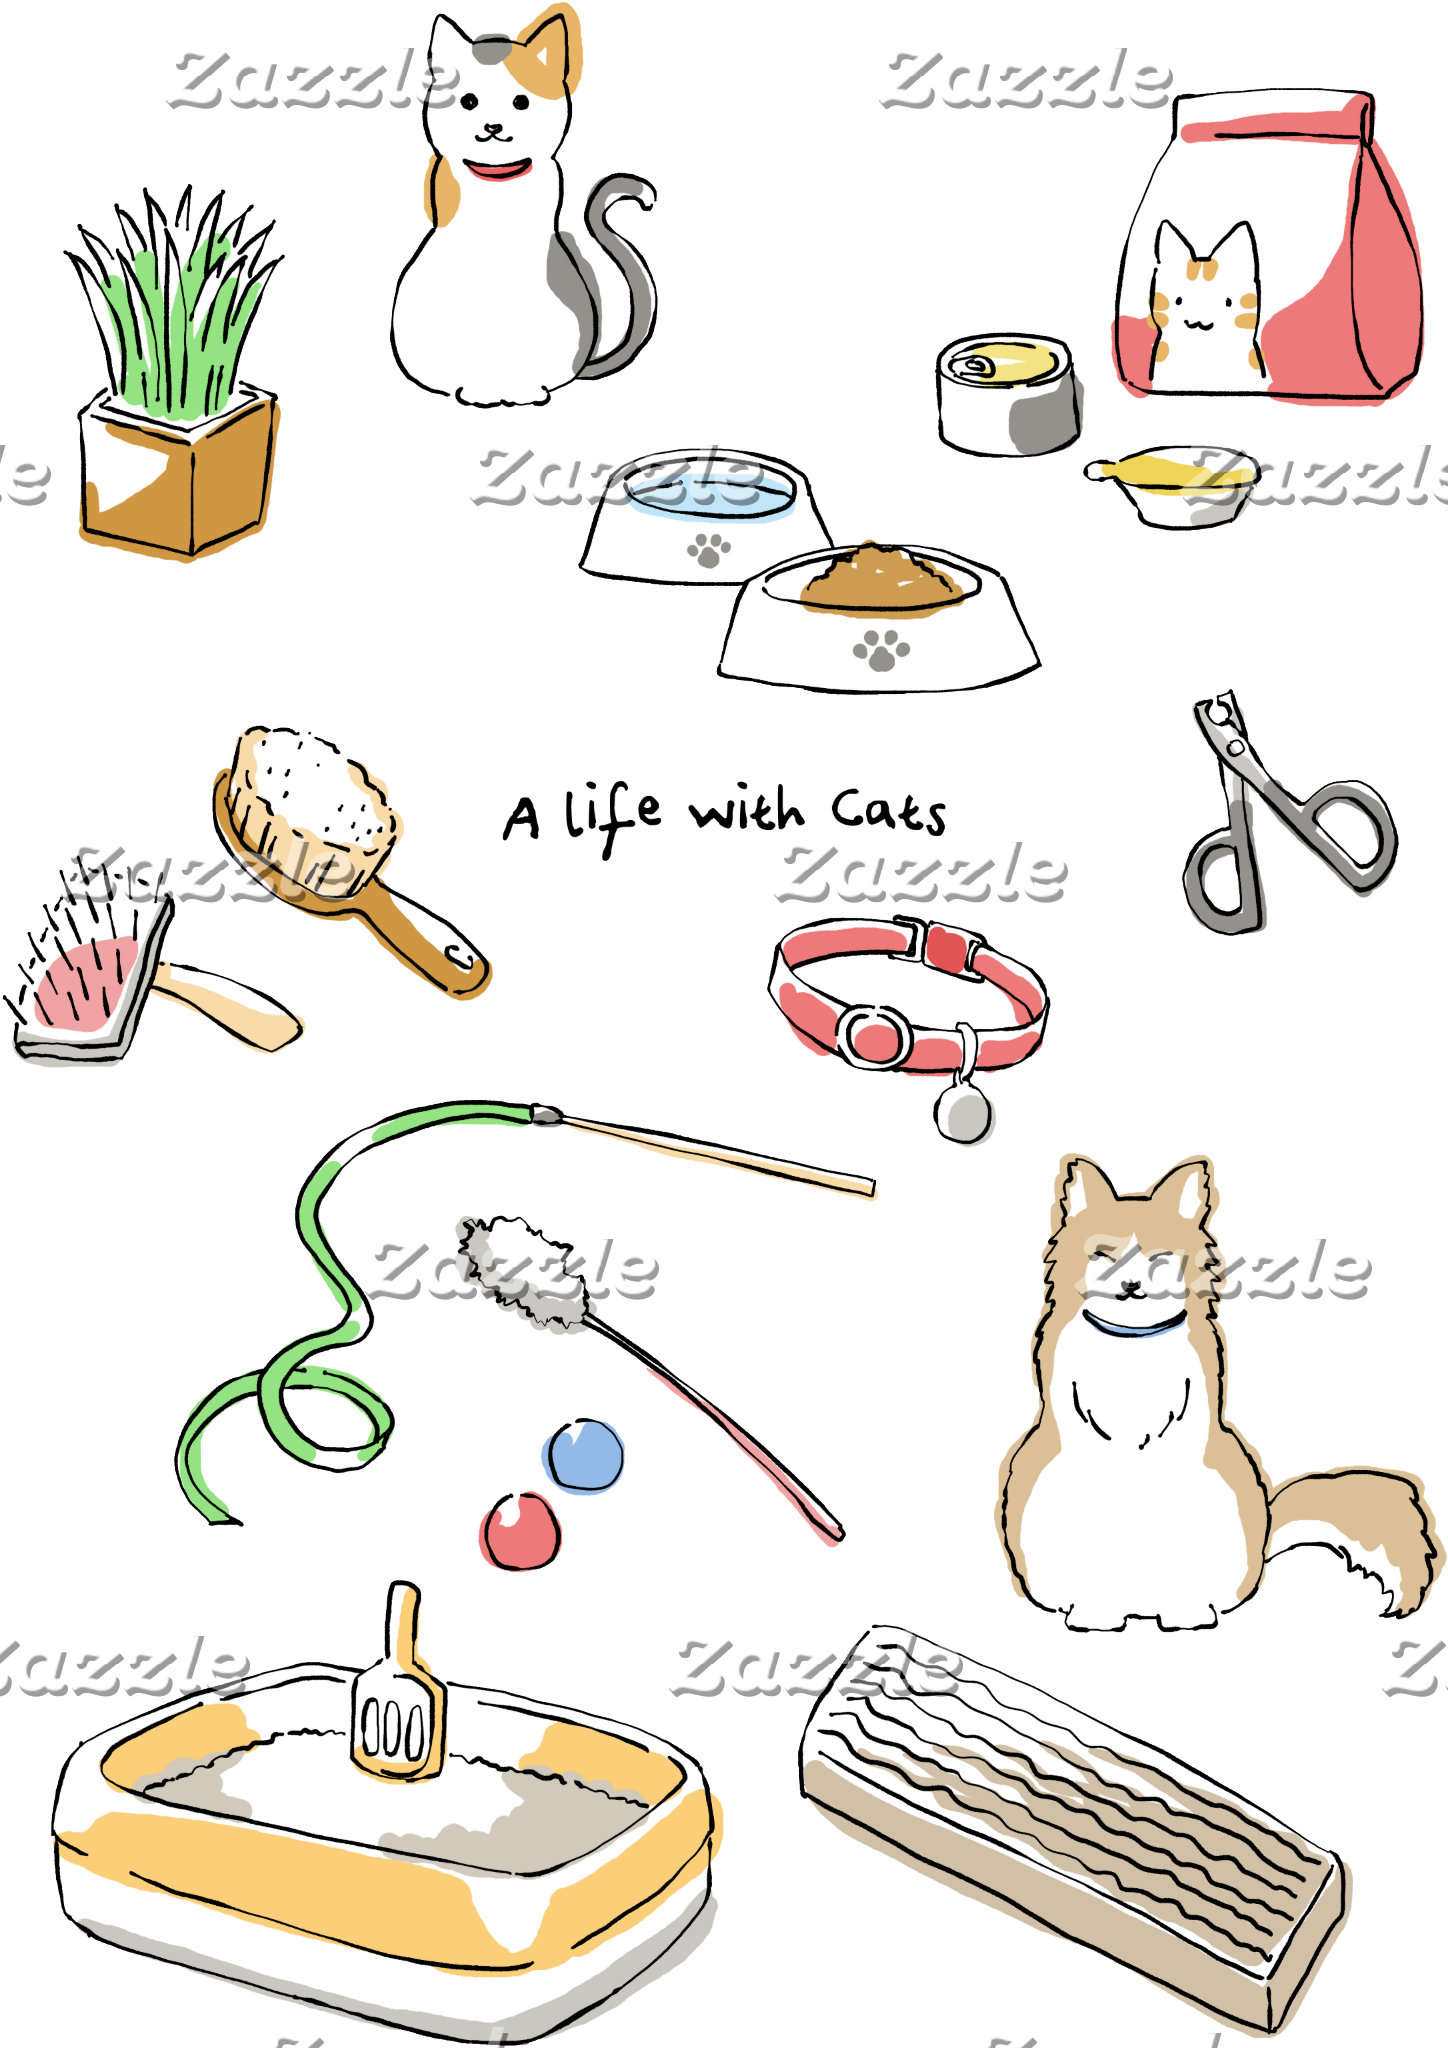 A life with Cats